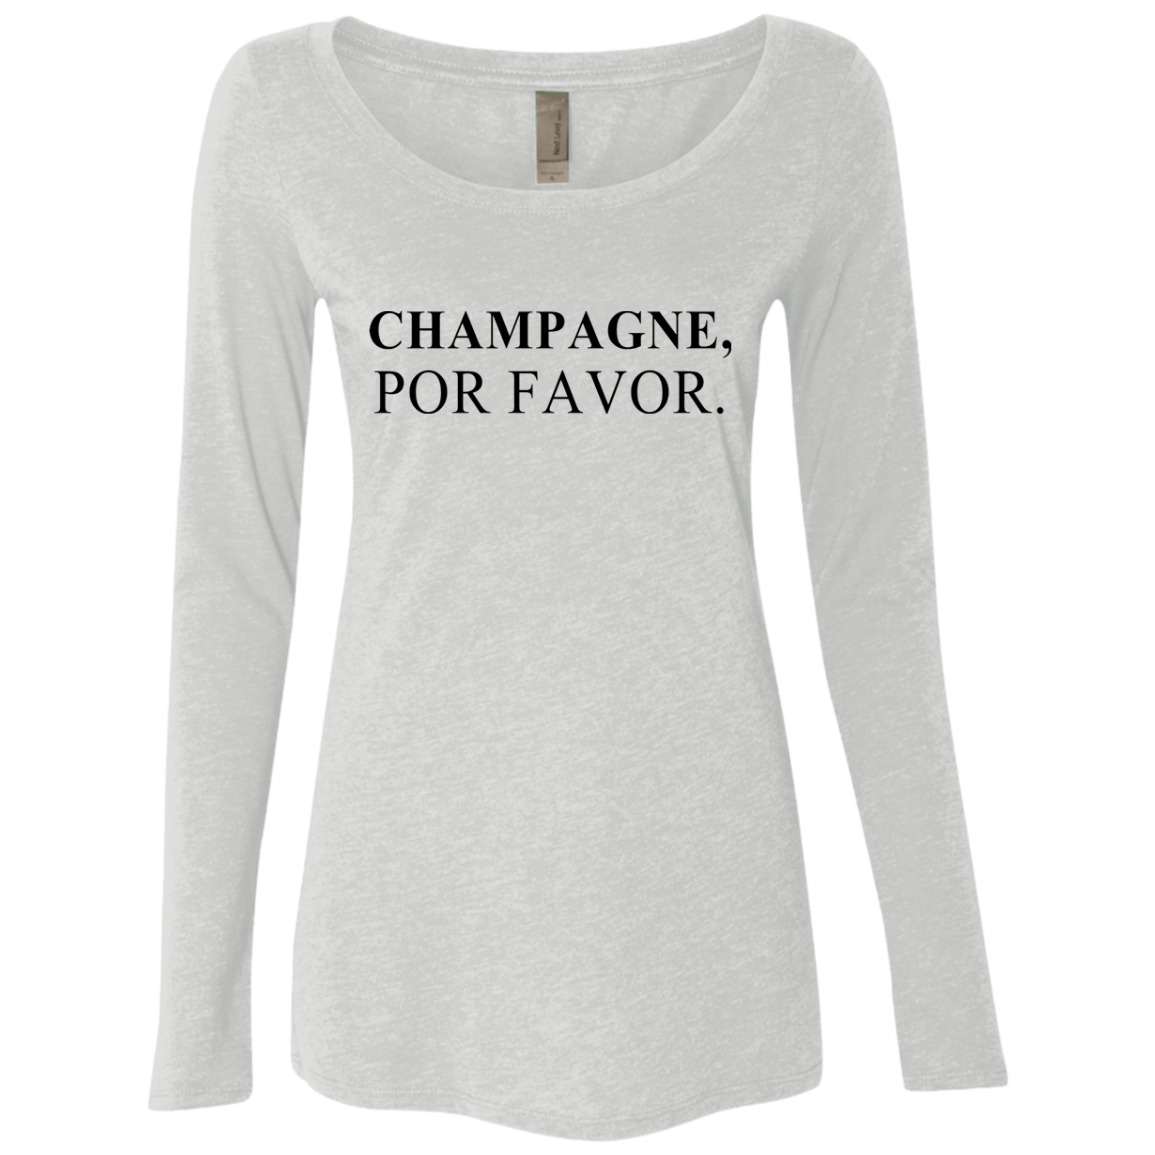 Champagne Por Favor Women's Long Sleeve Tee